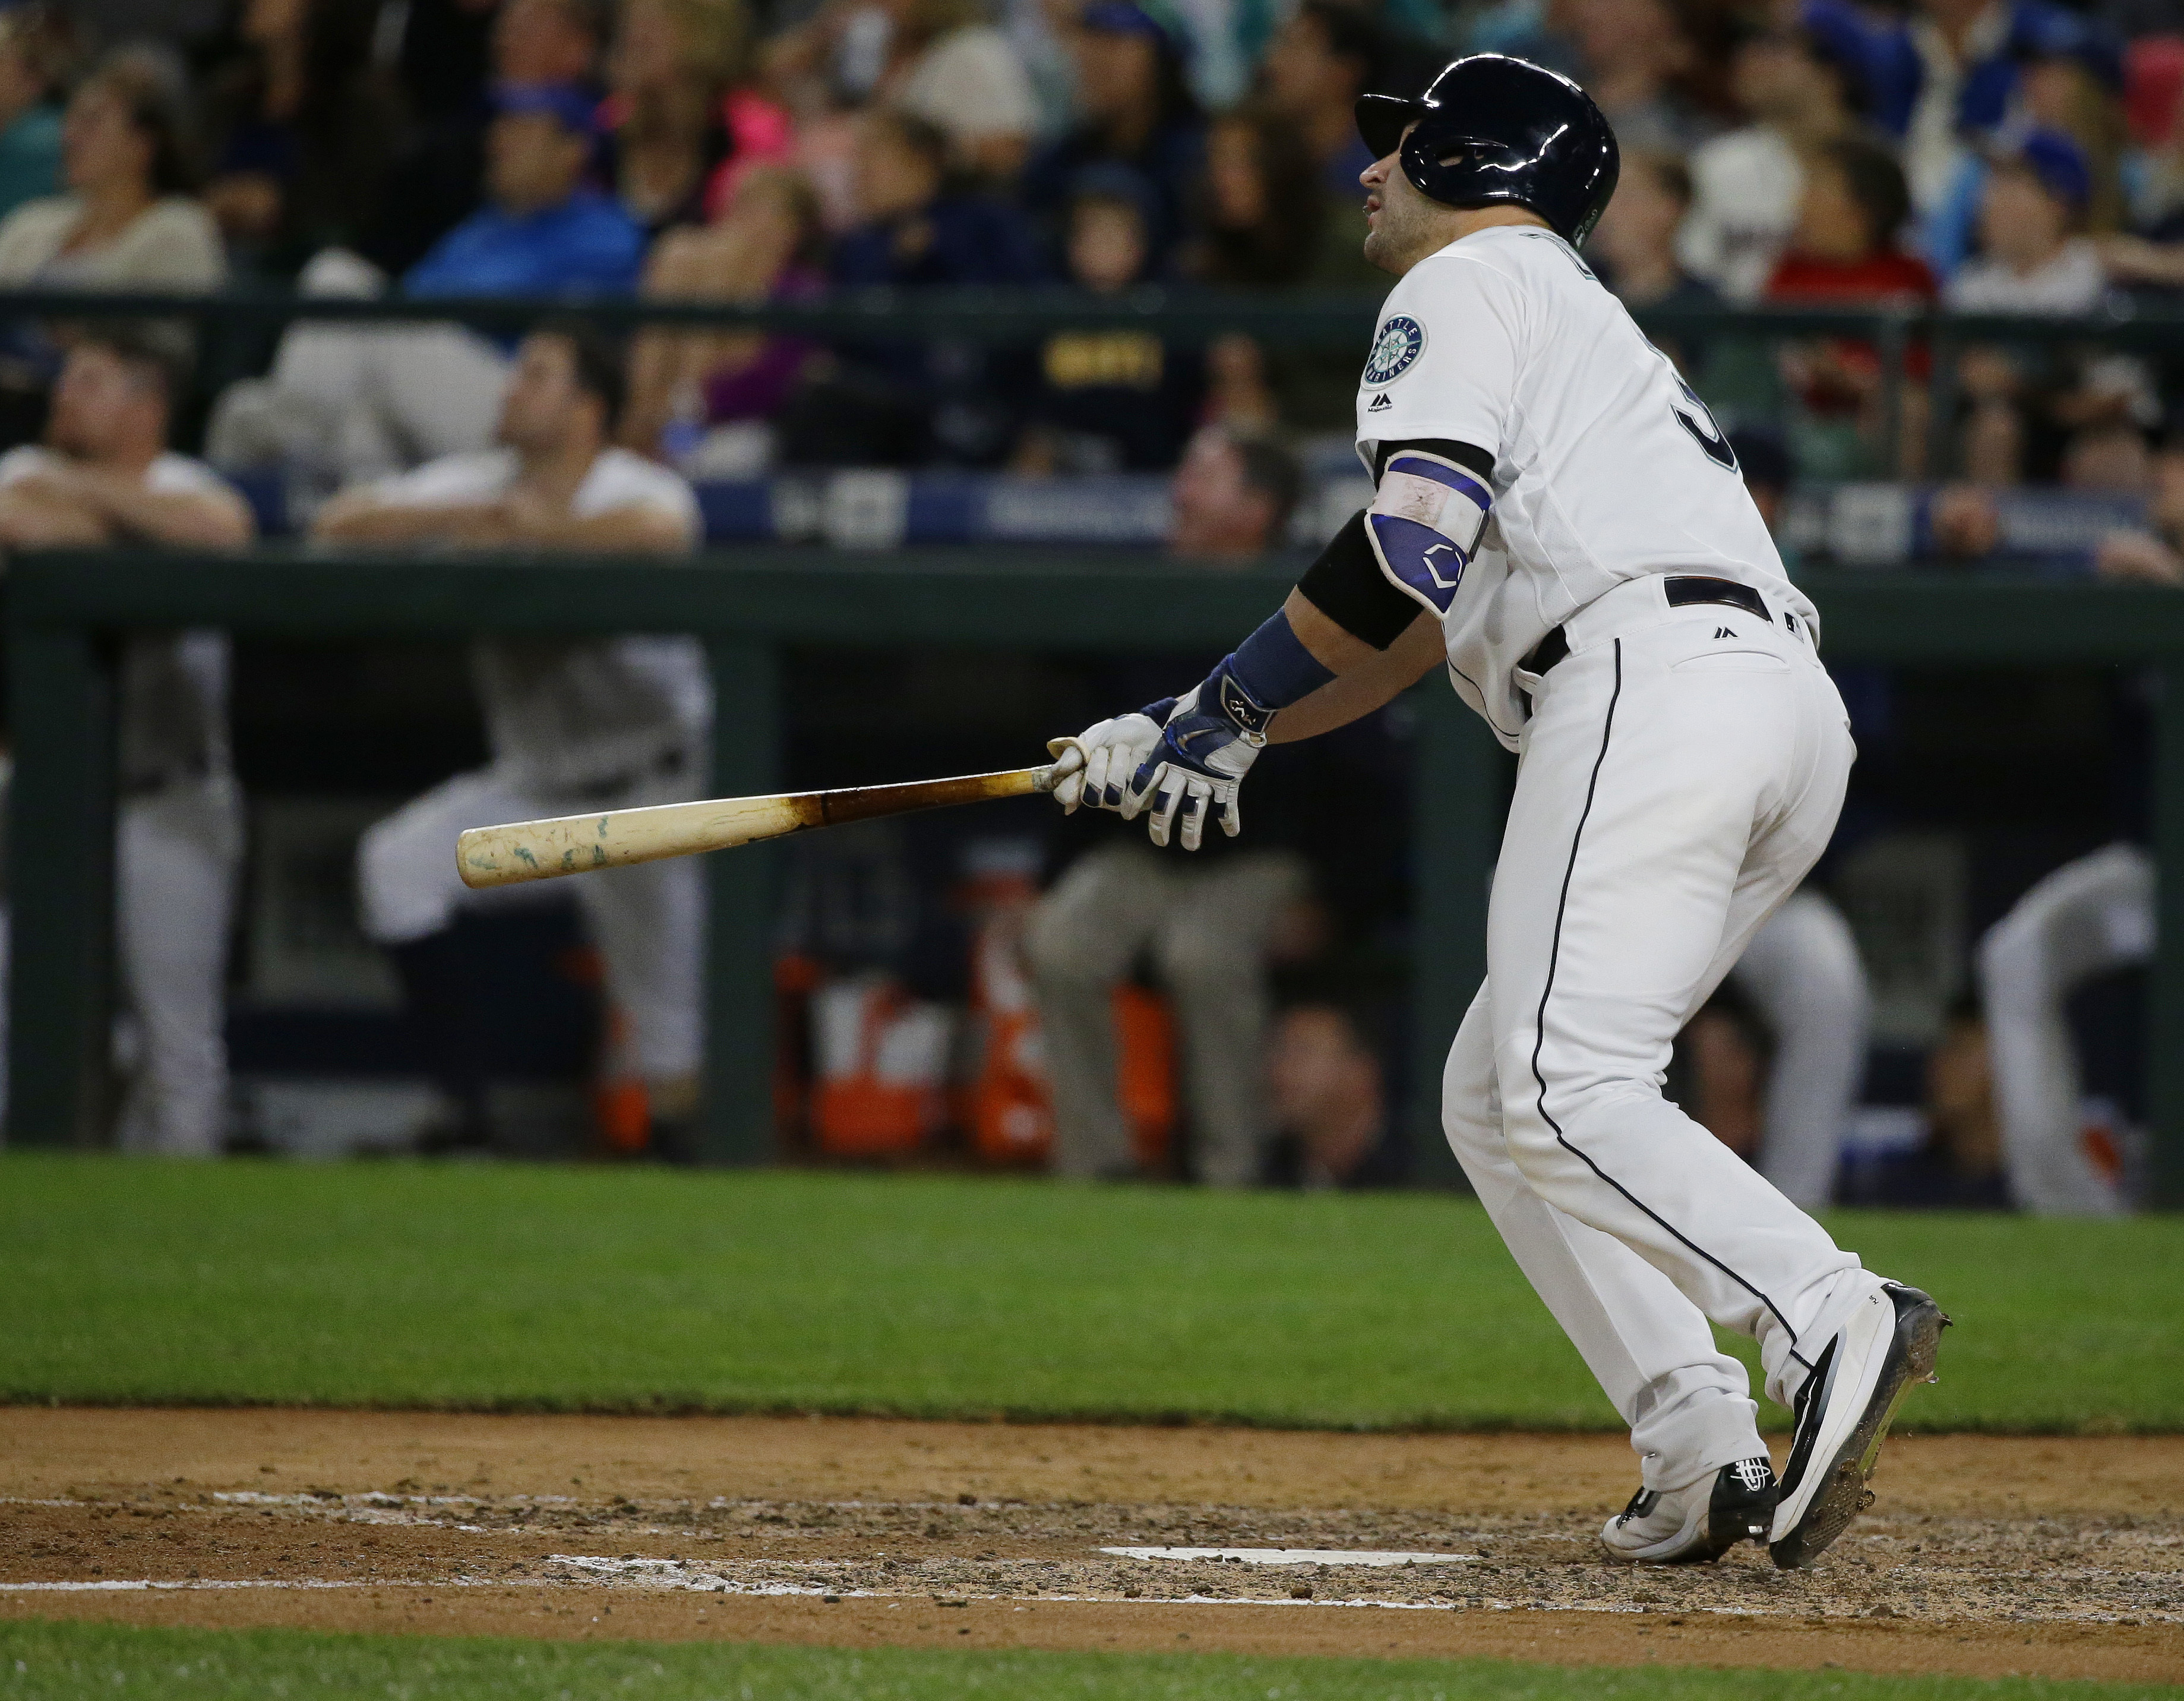 Seattle Mariners' Mike Zunino watches his three-run home run against the New York Yankees in the sixth inning of a baseball game, Monday, Aug. 22, 2016, in Seattle. (AP Photo/Ted S. Warren)